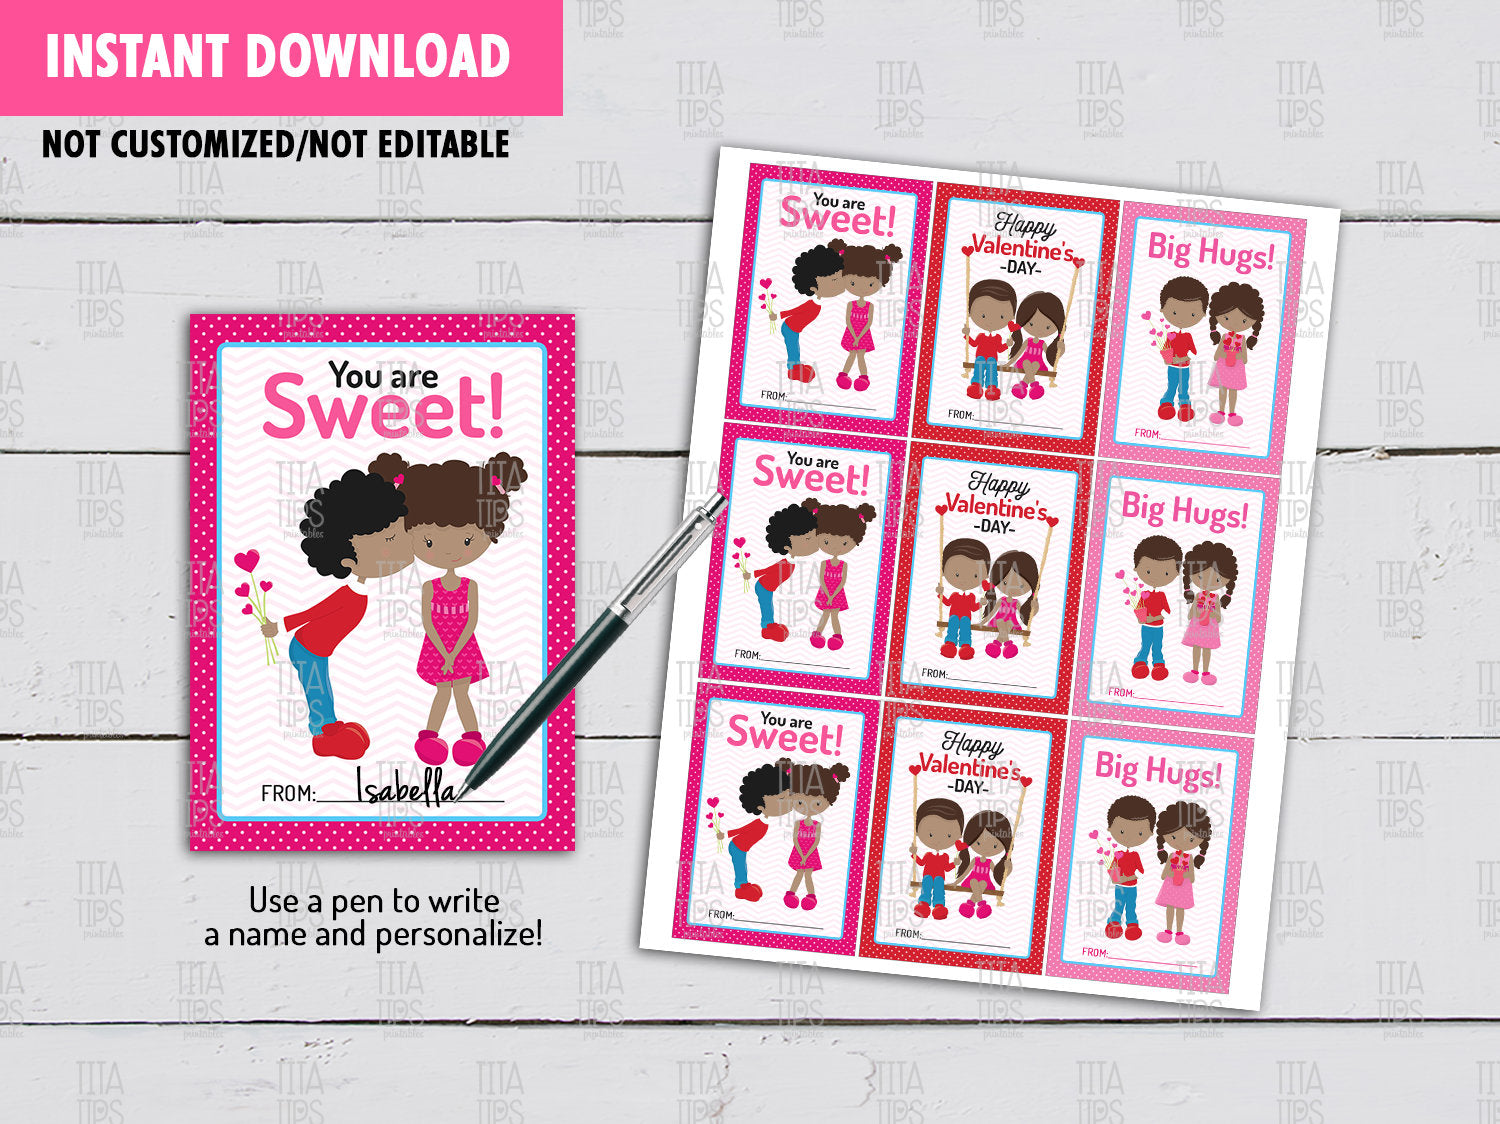 African Kids Valentine's Day Card DIY Printable, Boy and Girl Exchange Tag, Instant Download - TitaTipsPrintables